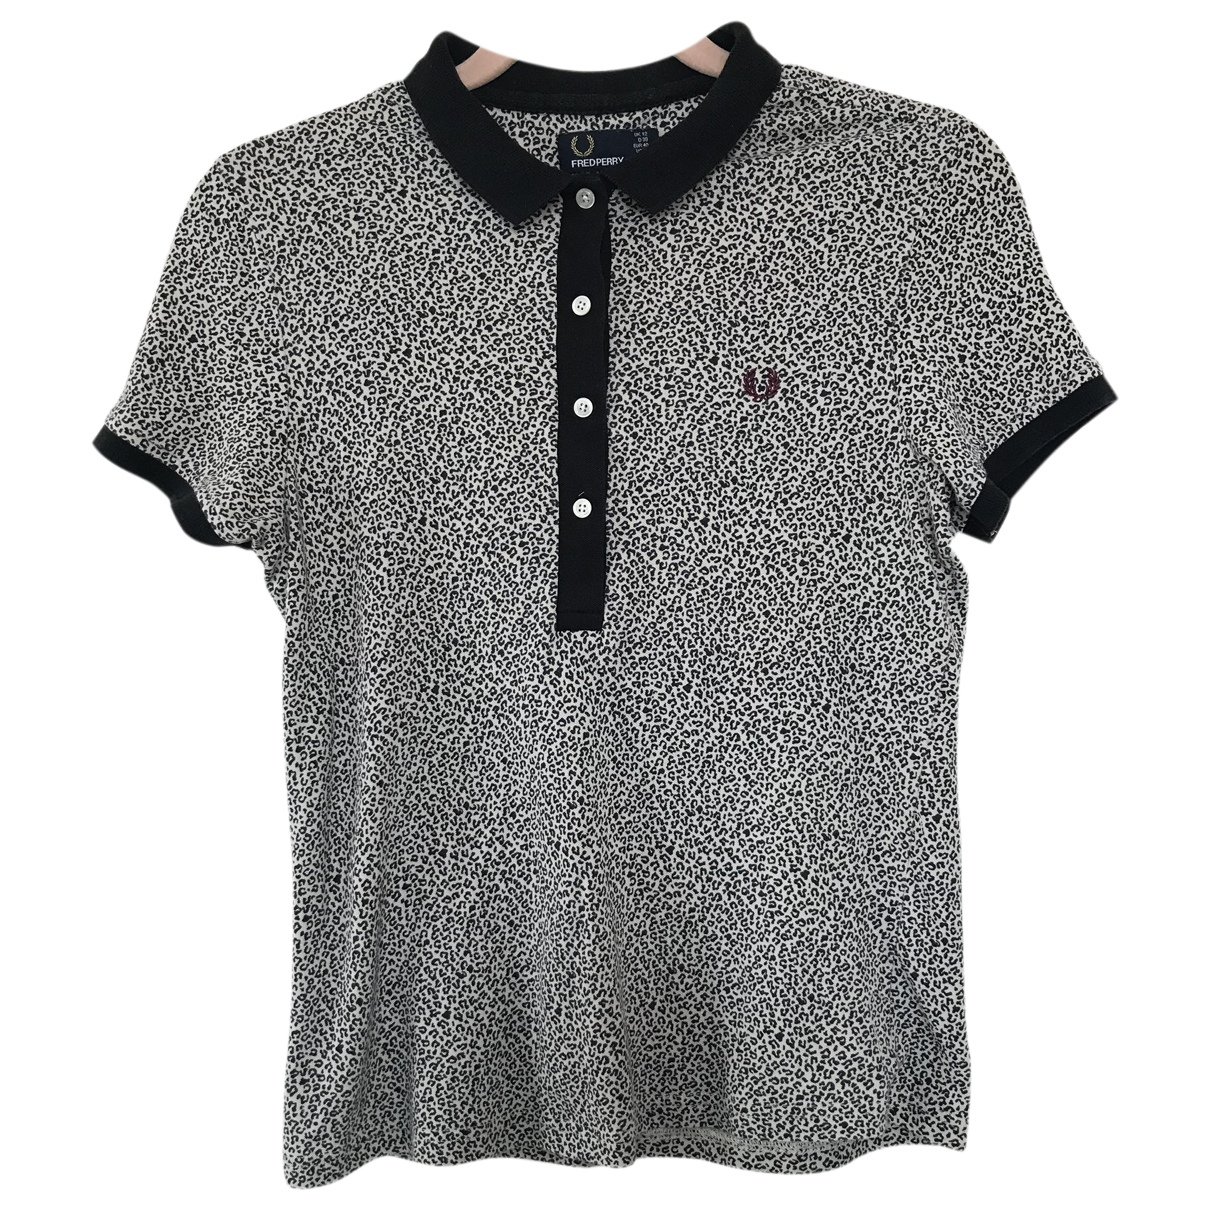 Fred Perry N Black Cotton  top for Women 12 UK